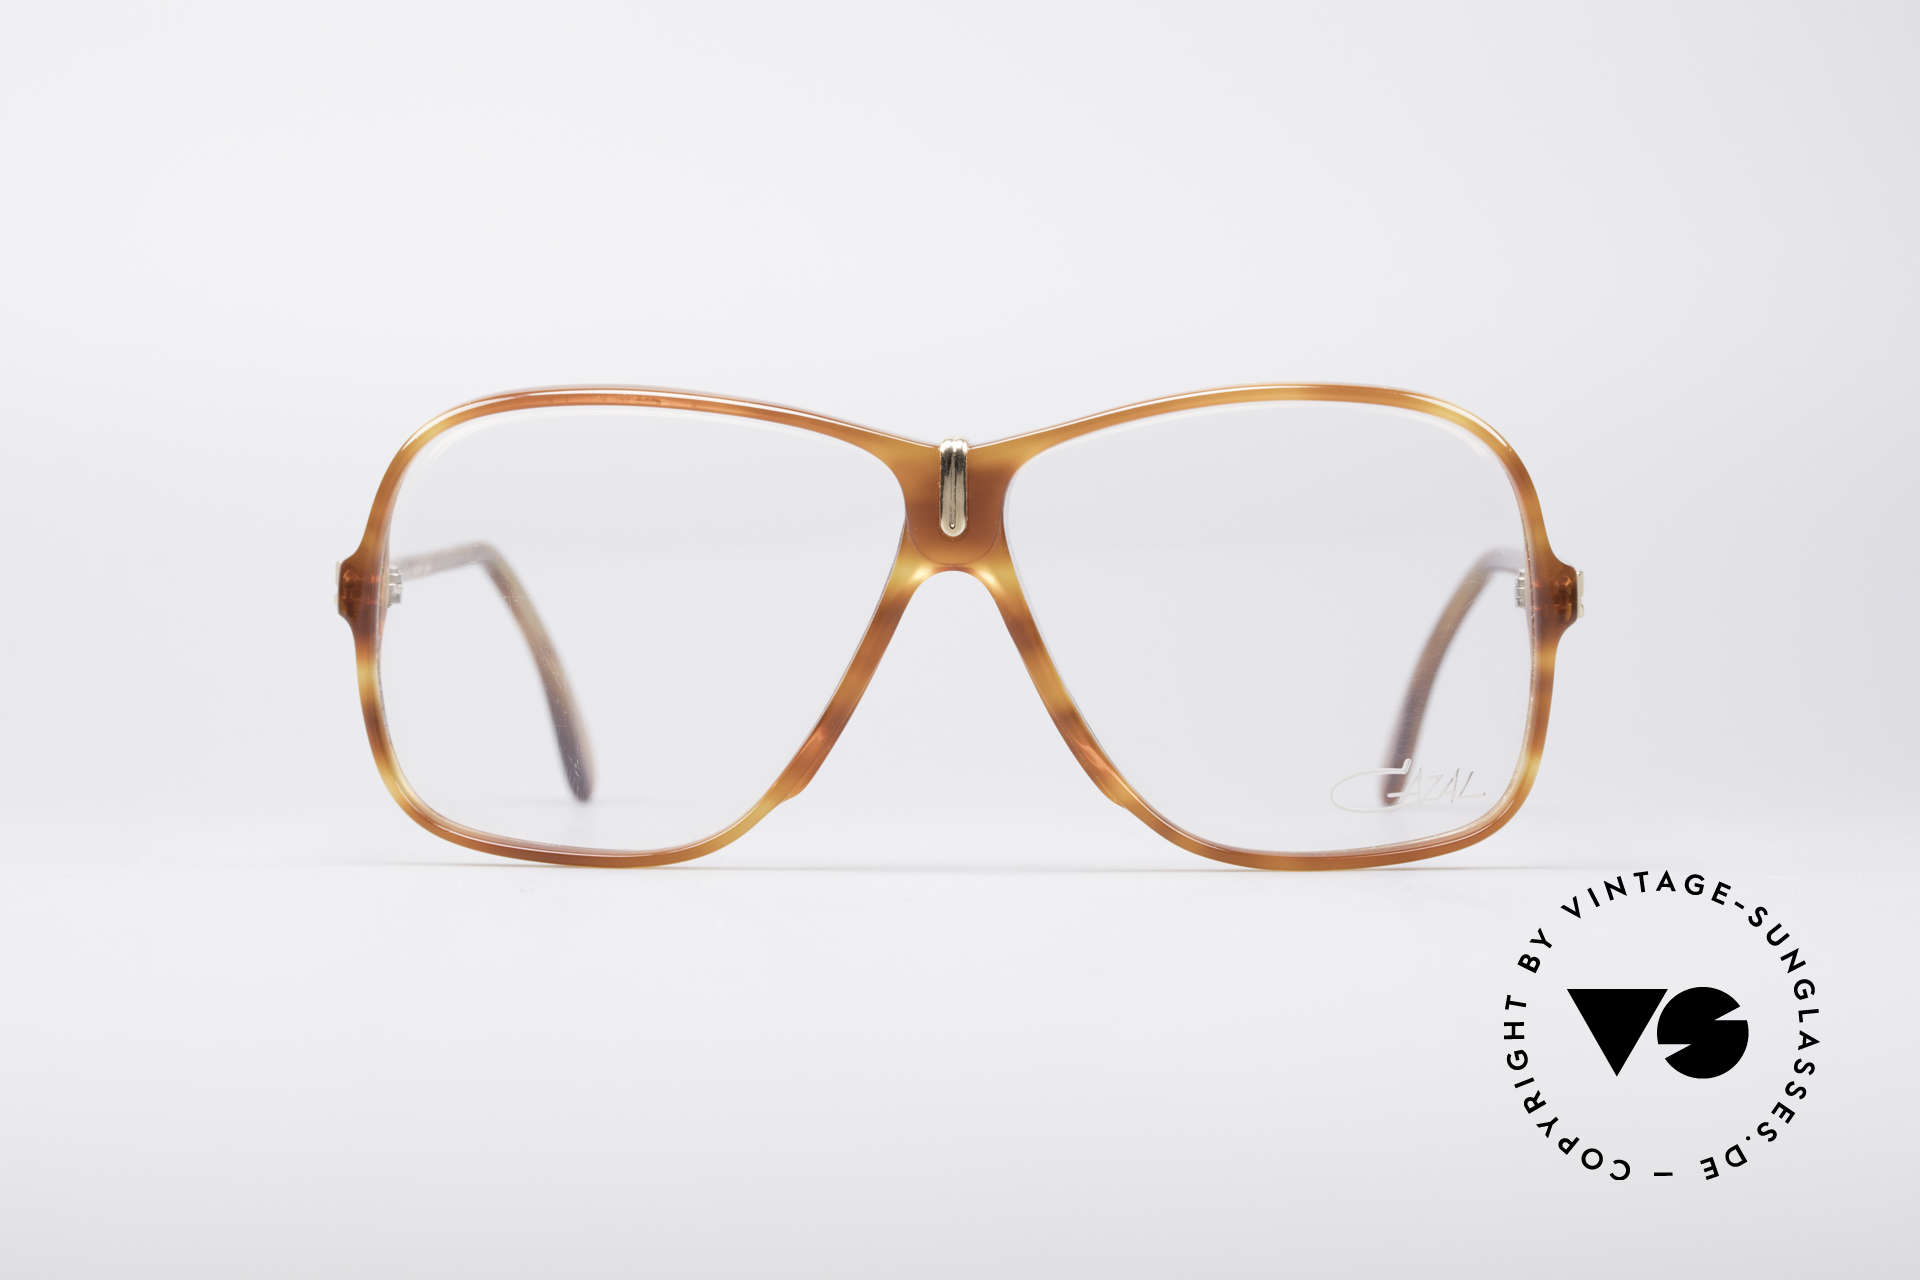 Cazal 621 West Germany Cazal Glasses, ultra rare frame (still with the old CAZAL logo), Made for Men